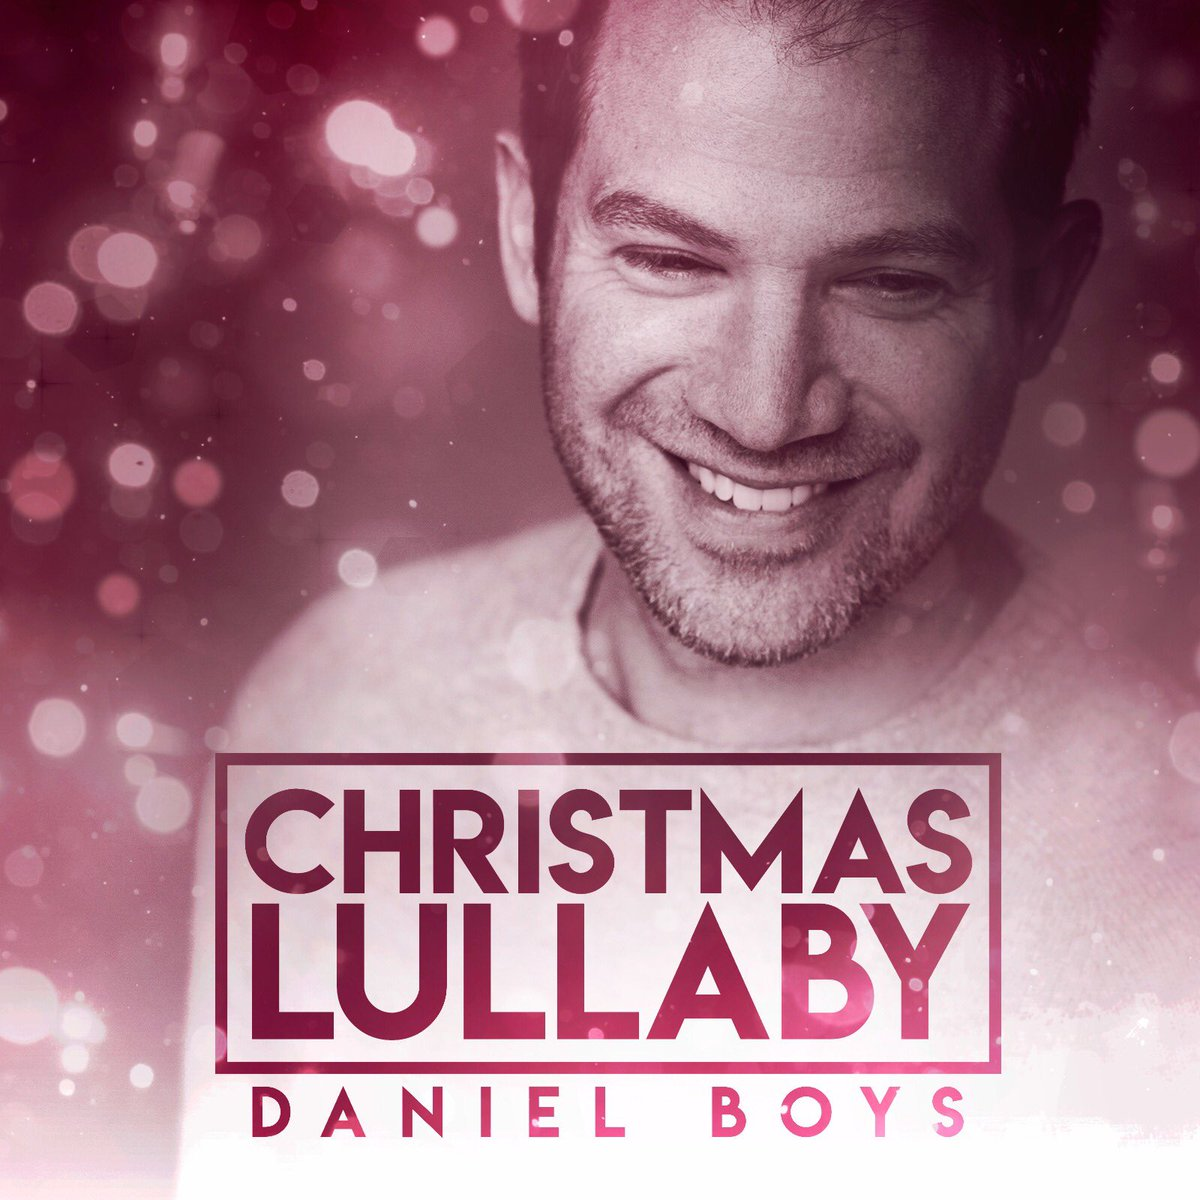 Well here it is. My first Christmas single! A huge thank you to @DonMescall for writing such a beautiful song & to @AGRTVRecords for believing in me and releasing it. It's available on all digital platforms NOW! 😊 If you could spare 79p & buy the single I'd be very grateful! ❄️